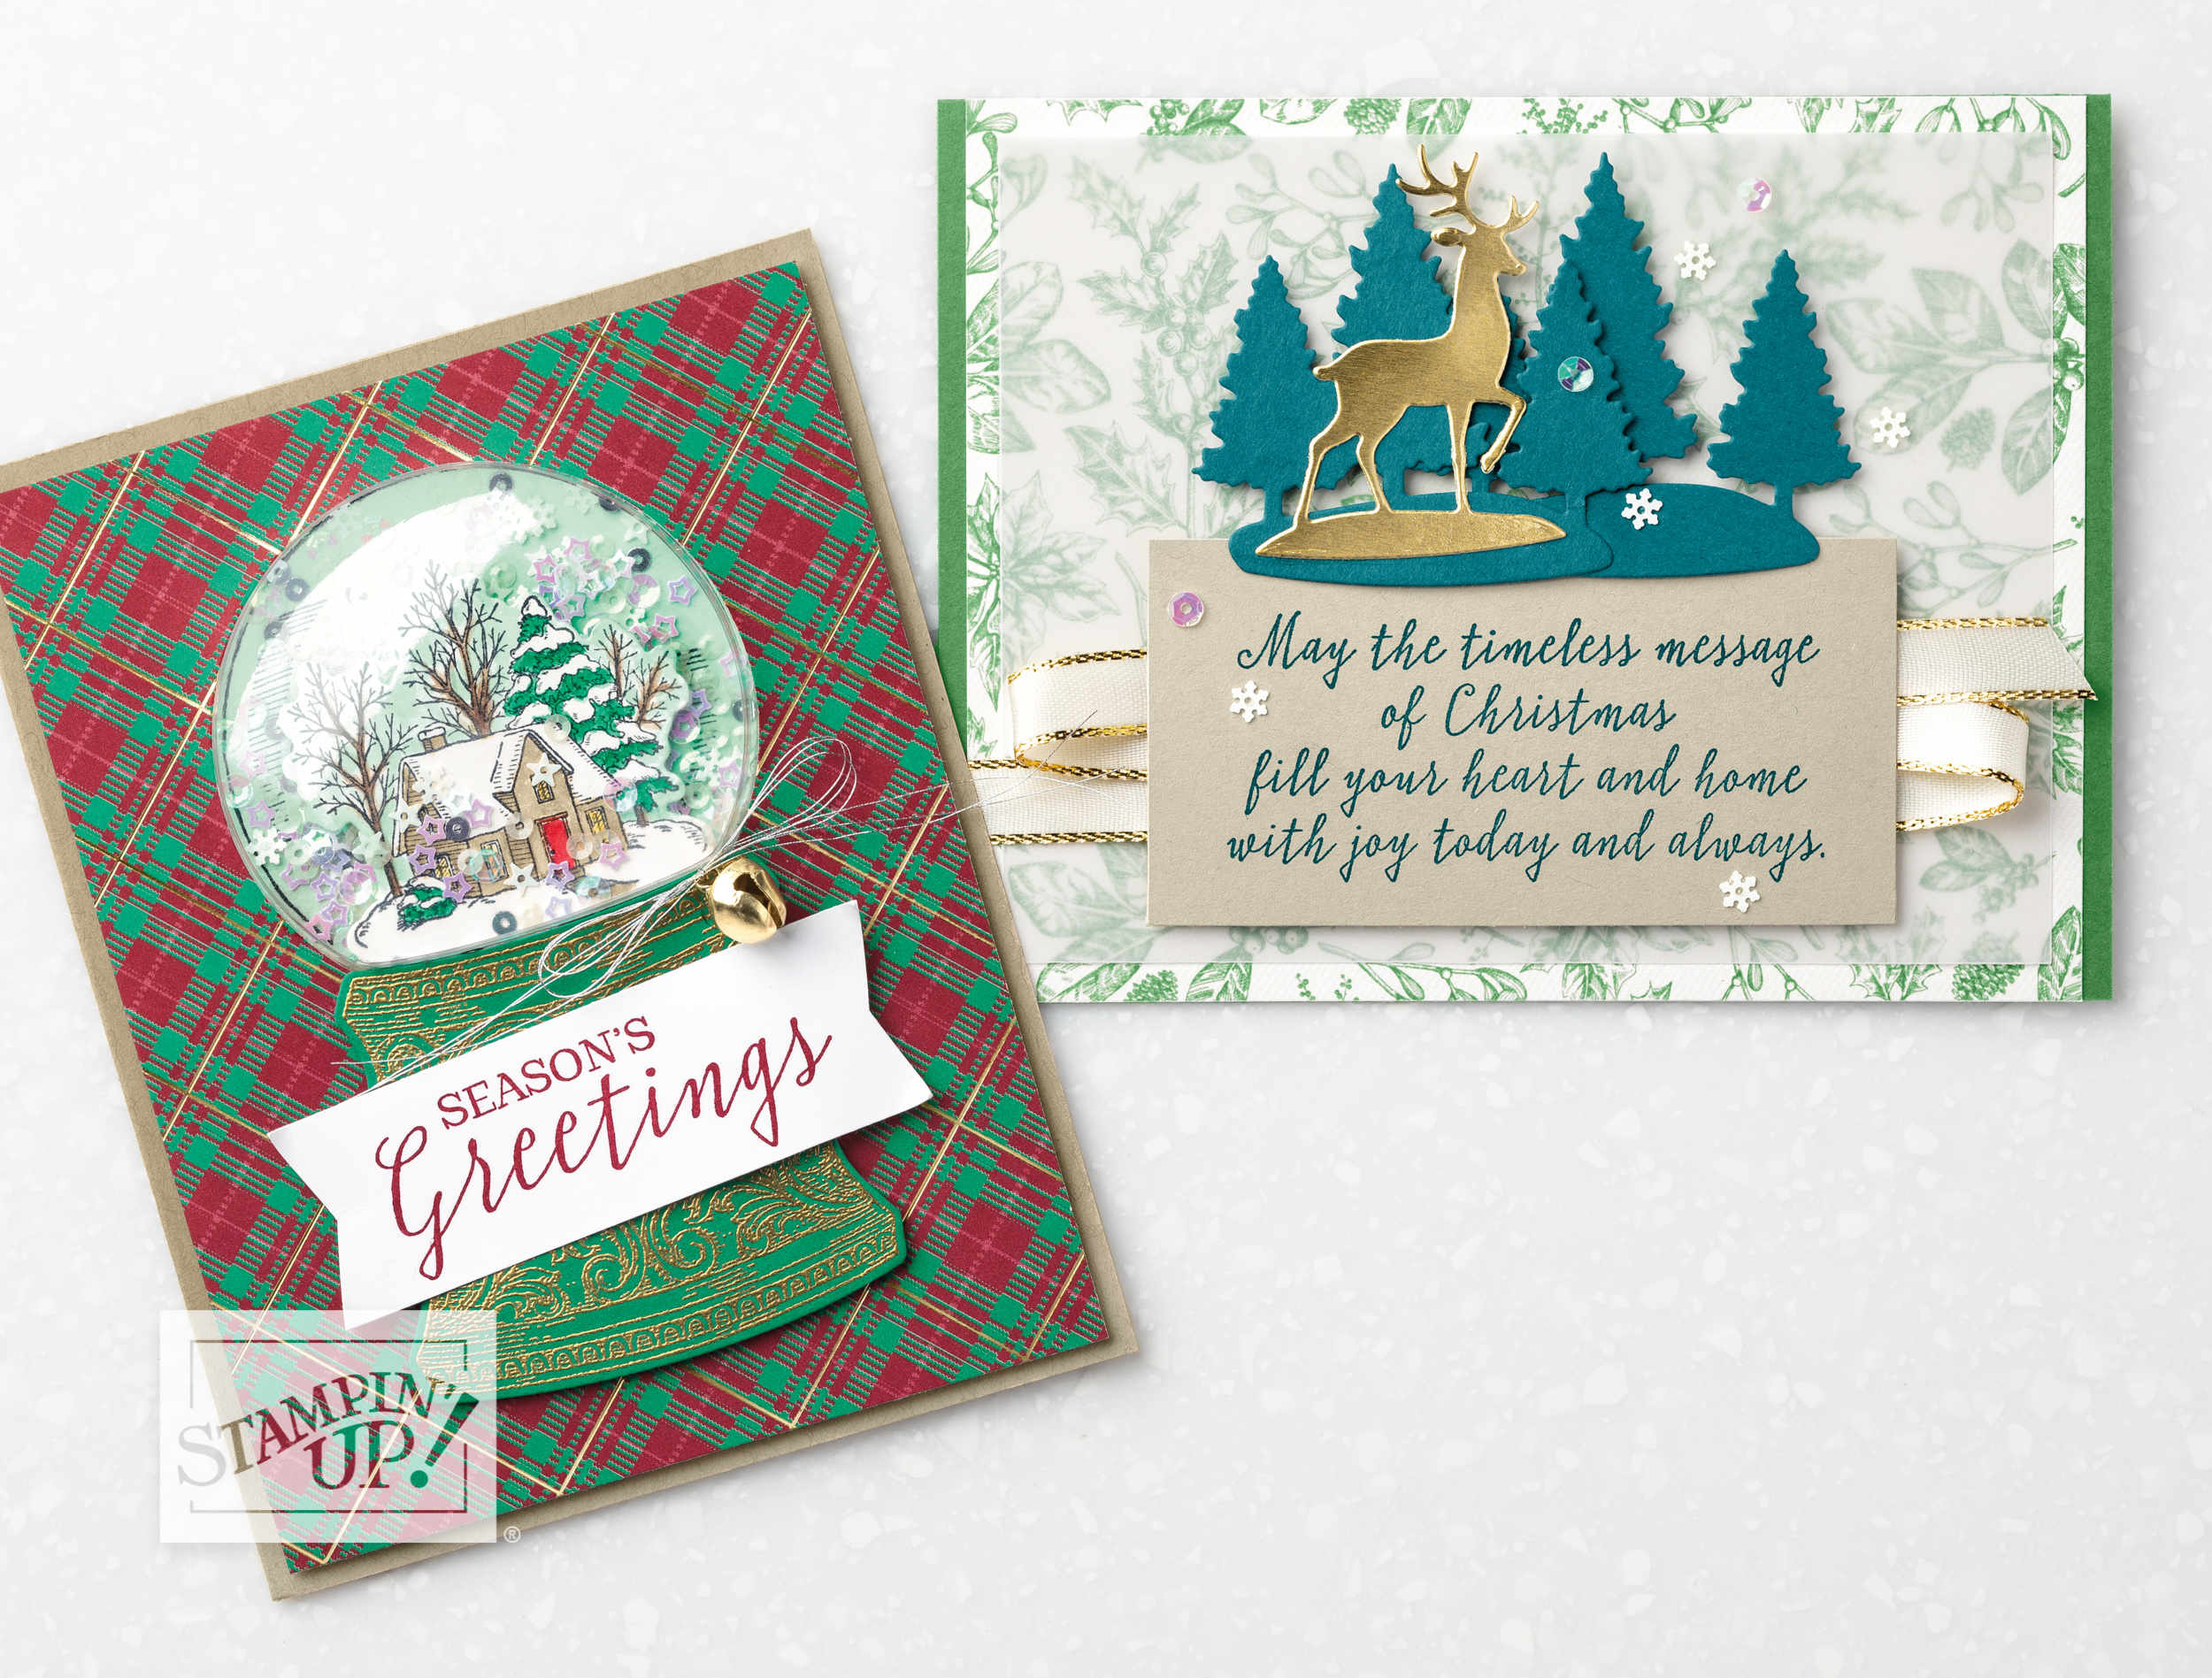 Still Scenes Bundle with Wendy Lee, Video, Tutorial, shaker card, stampin Up, SU, #creativeleeyours, hand made card, technique,still scenes stamp set, die-cut, snow globe scenes dies, holiday, Christmas, friend, celebration, stamping, creatively yours, creative-lee yours, DIY, deer, bears, trees, cottage